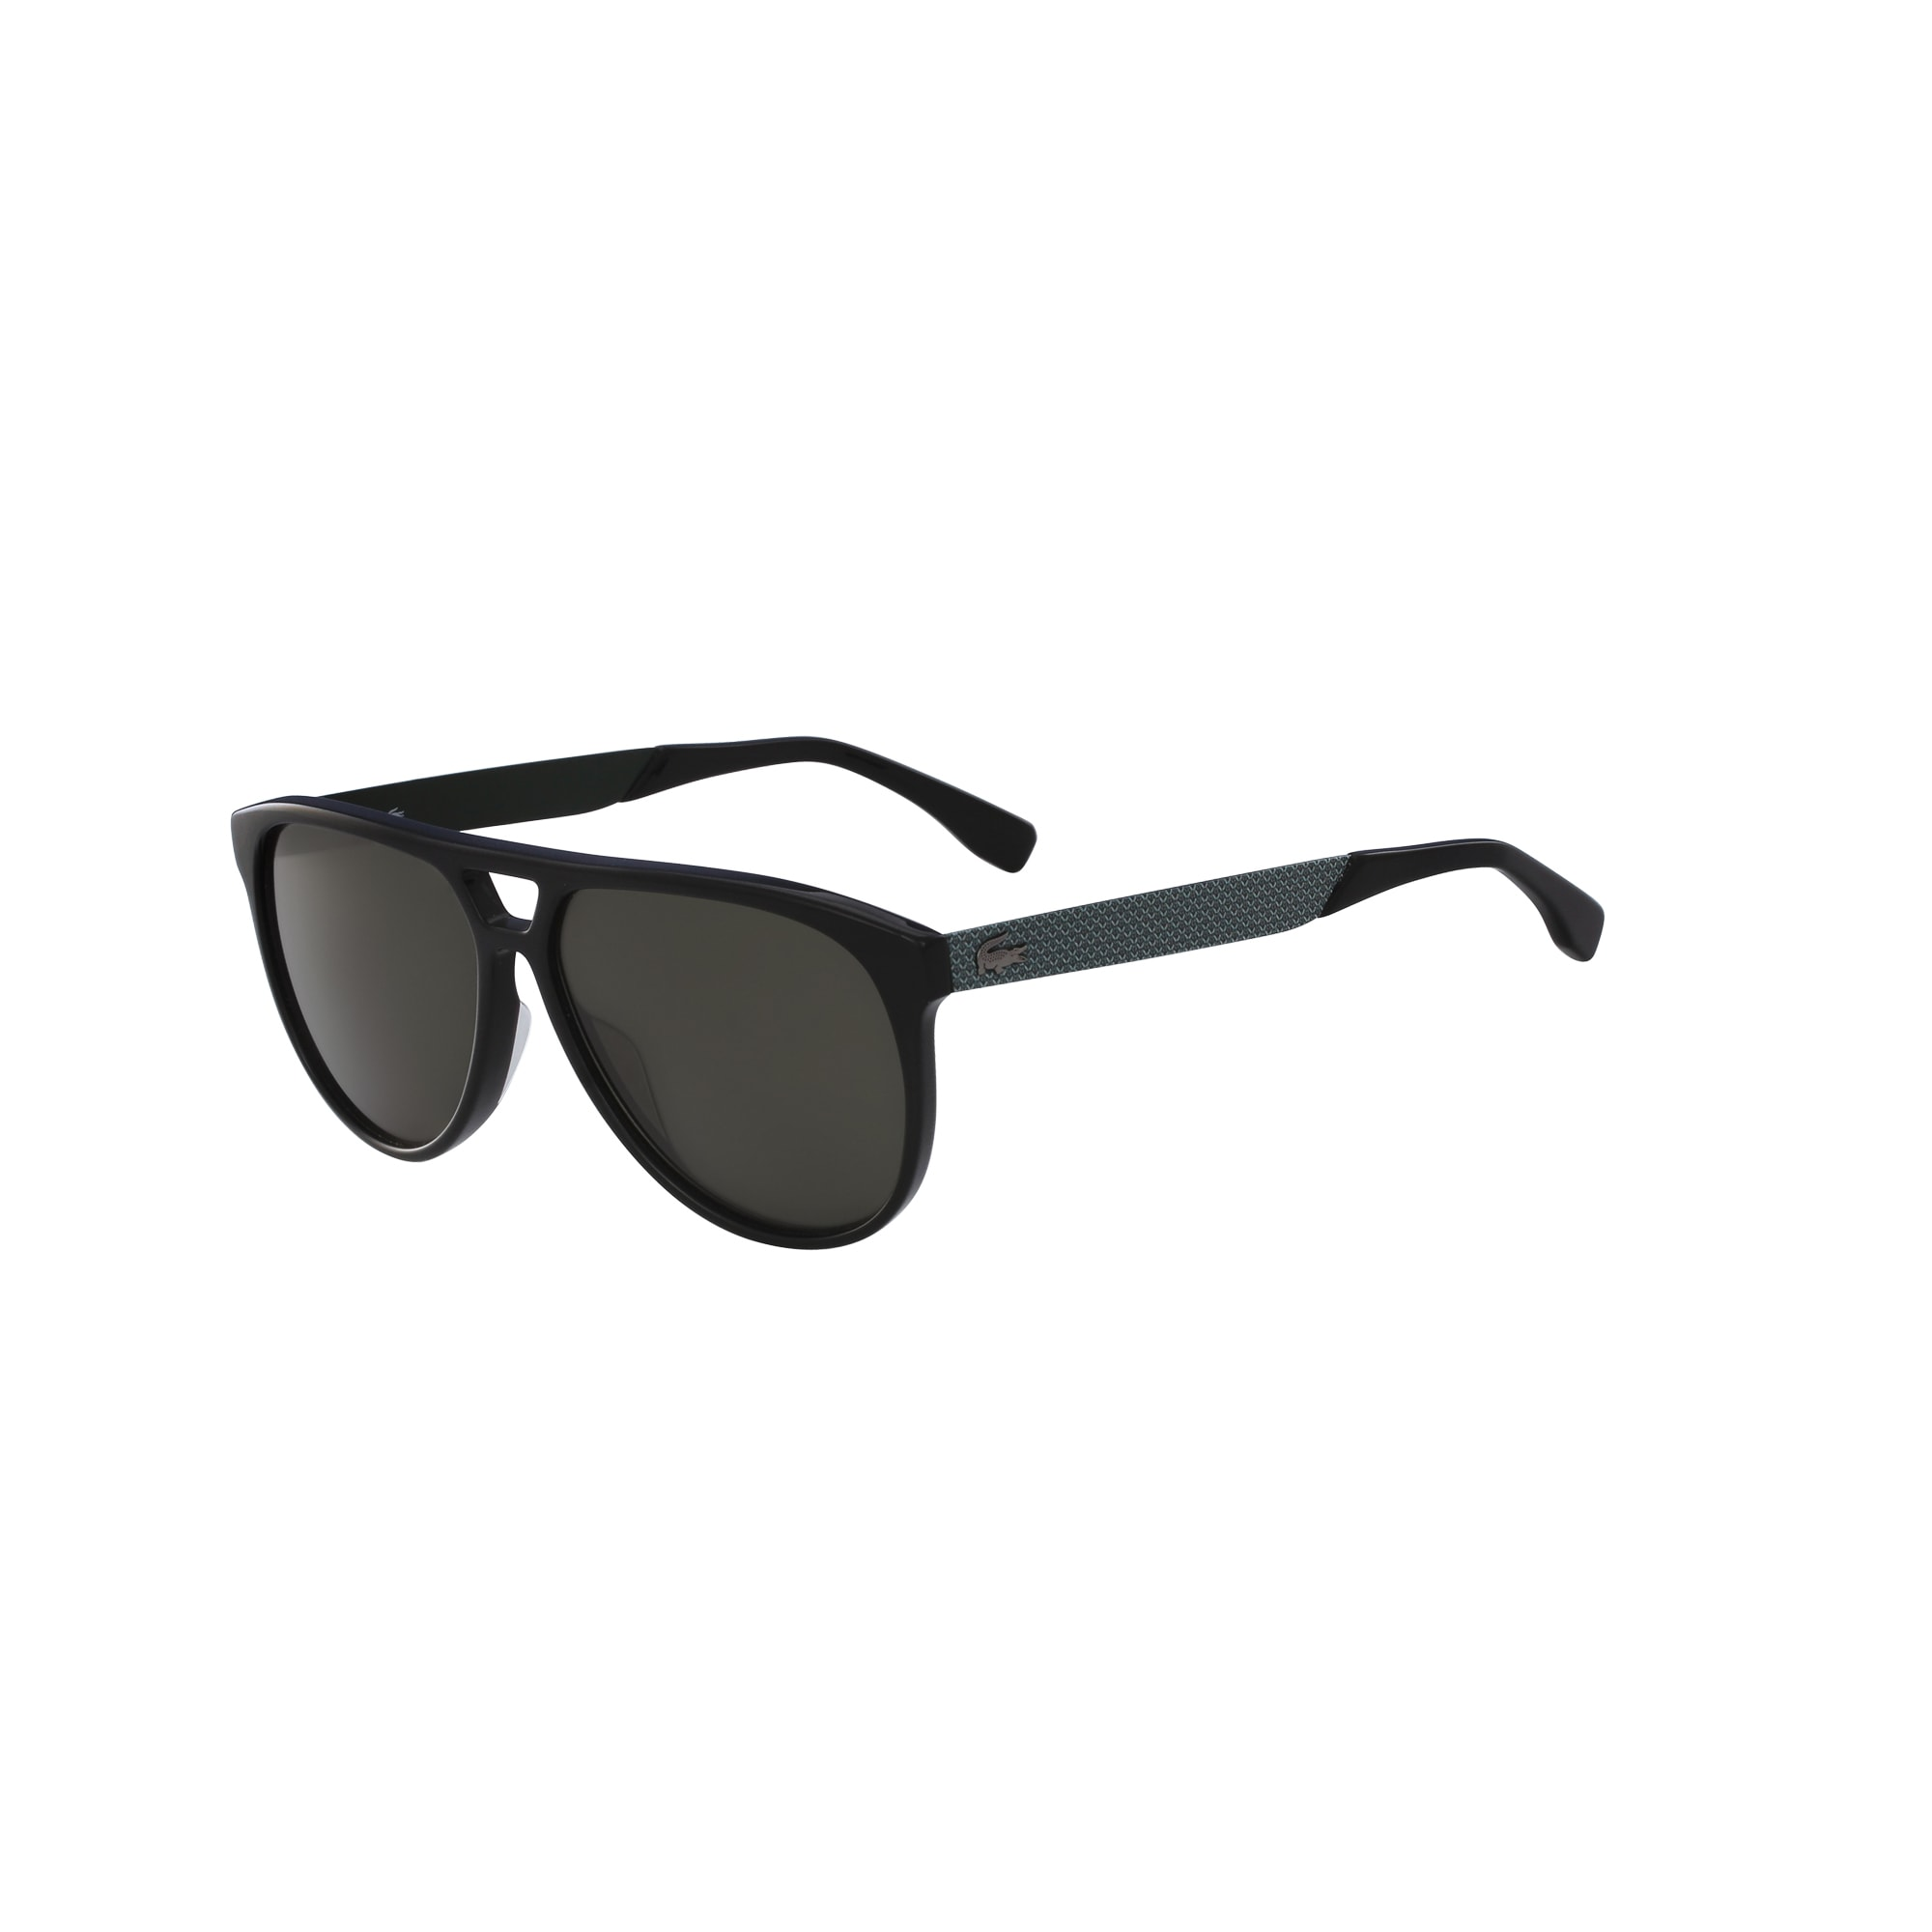 074cc843e96 Men s Plastic Pilot Shape Sunglasses